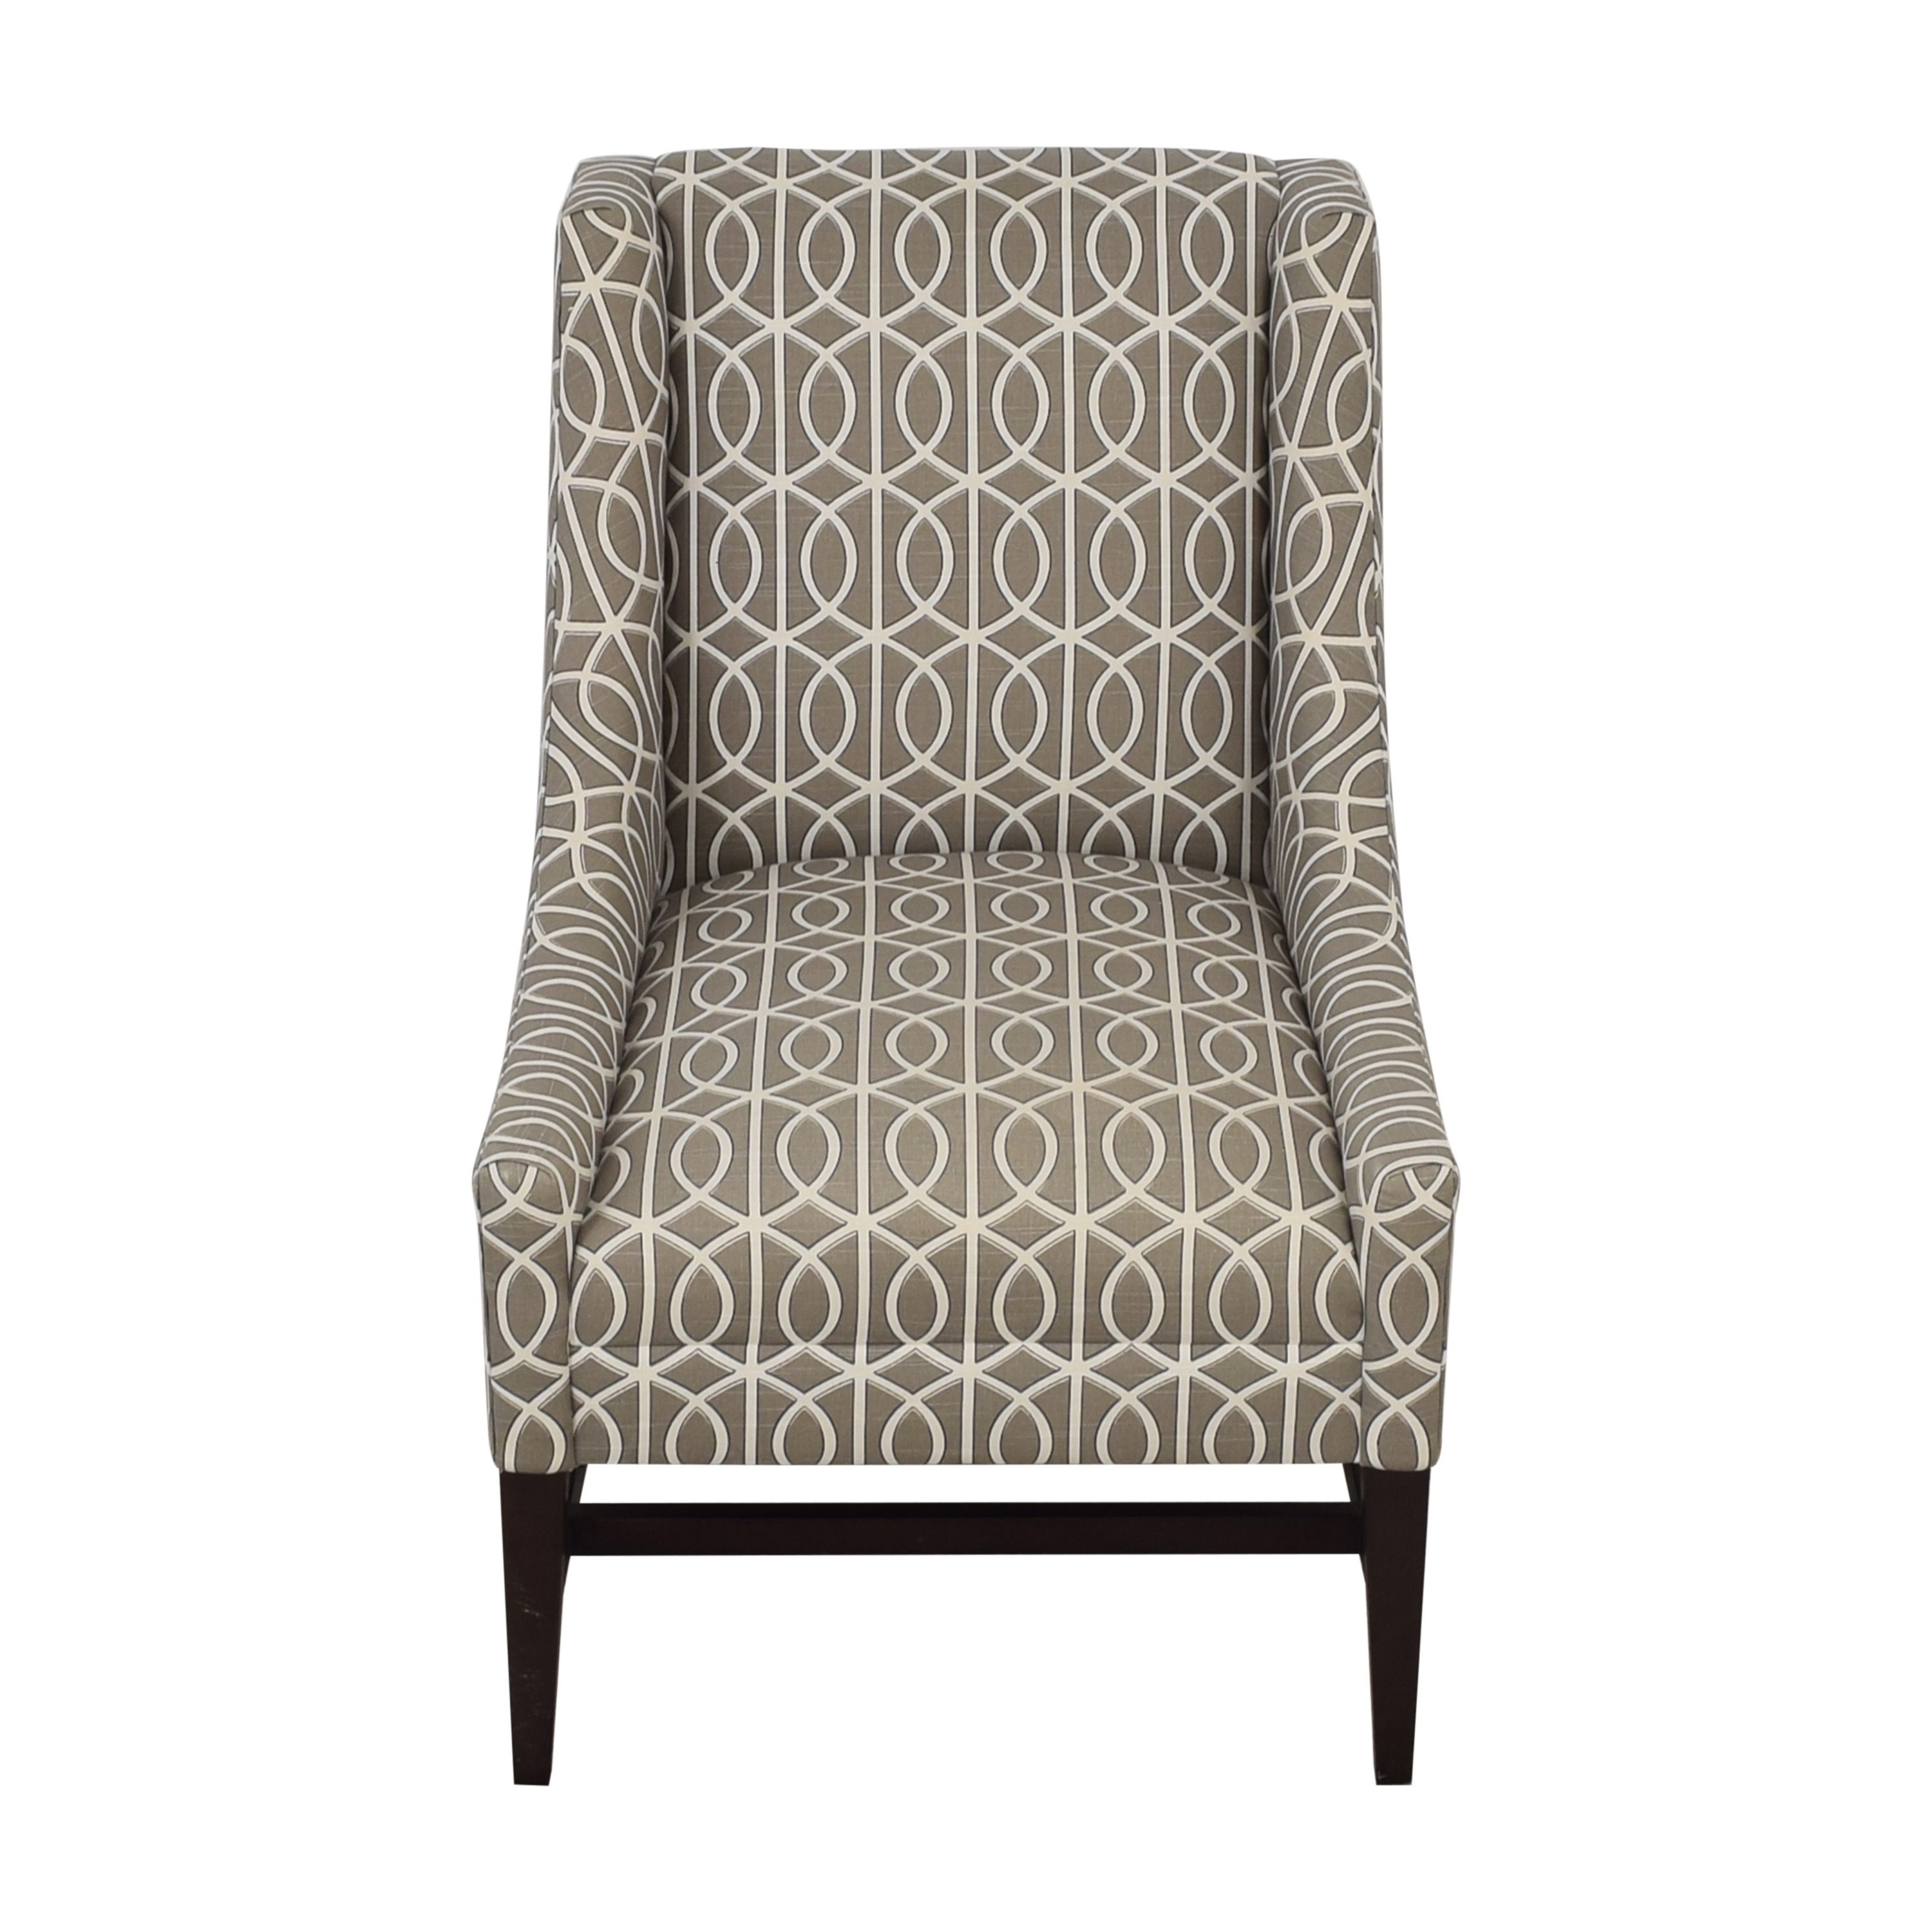 Crate & Barrel Crate & Barrel Chloe Armchair Lounge Accent Chair for sale